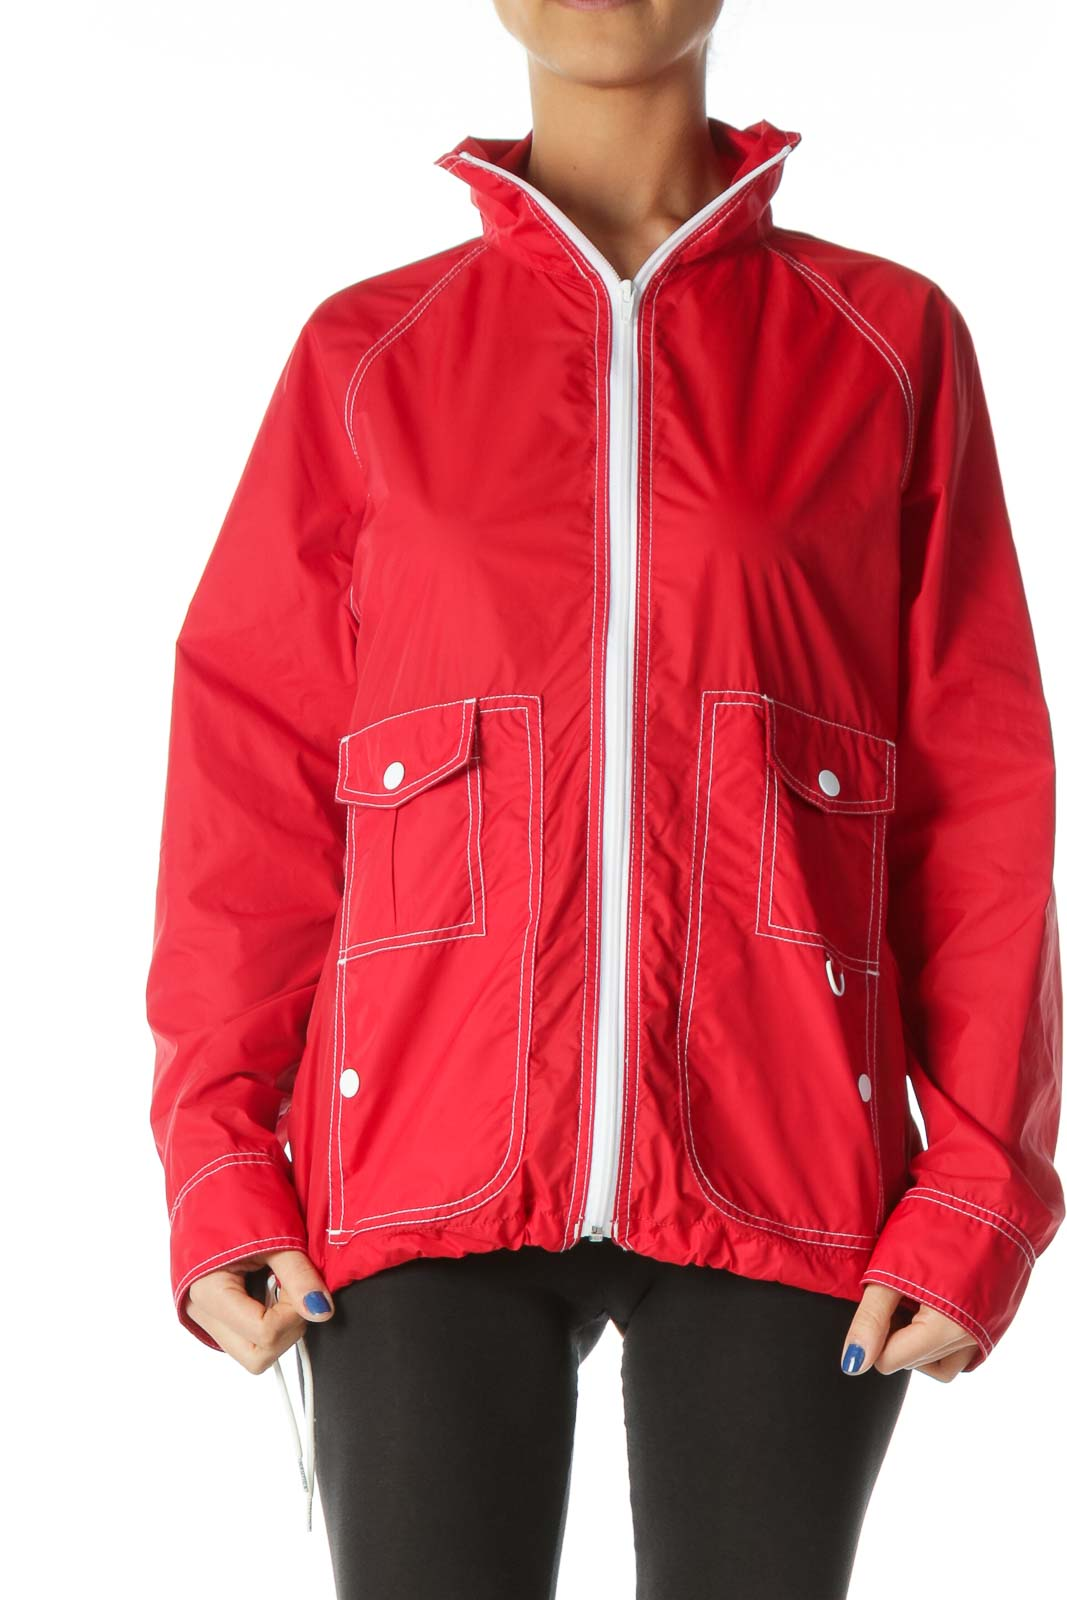 Red White-Topstitching Light Sports Jacket Front